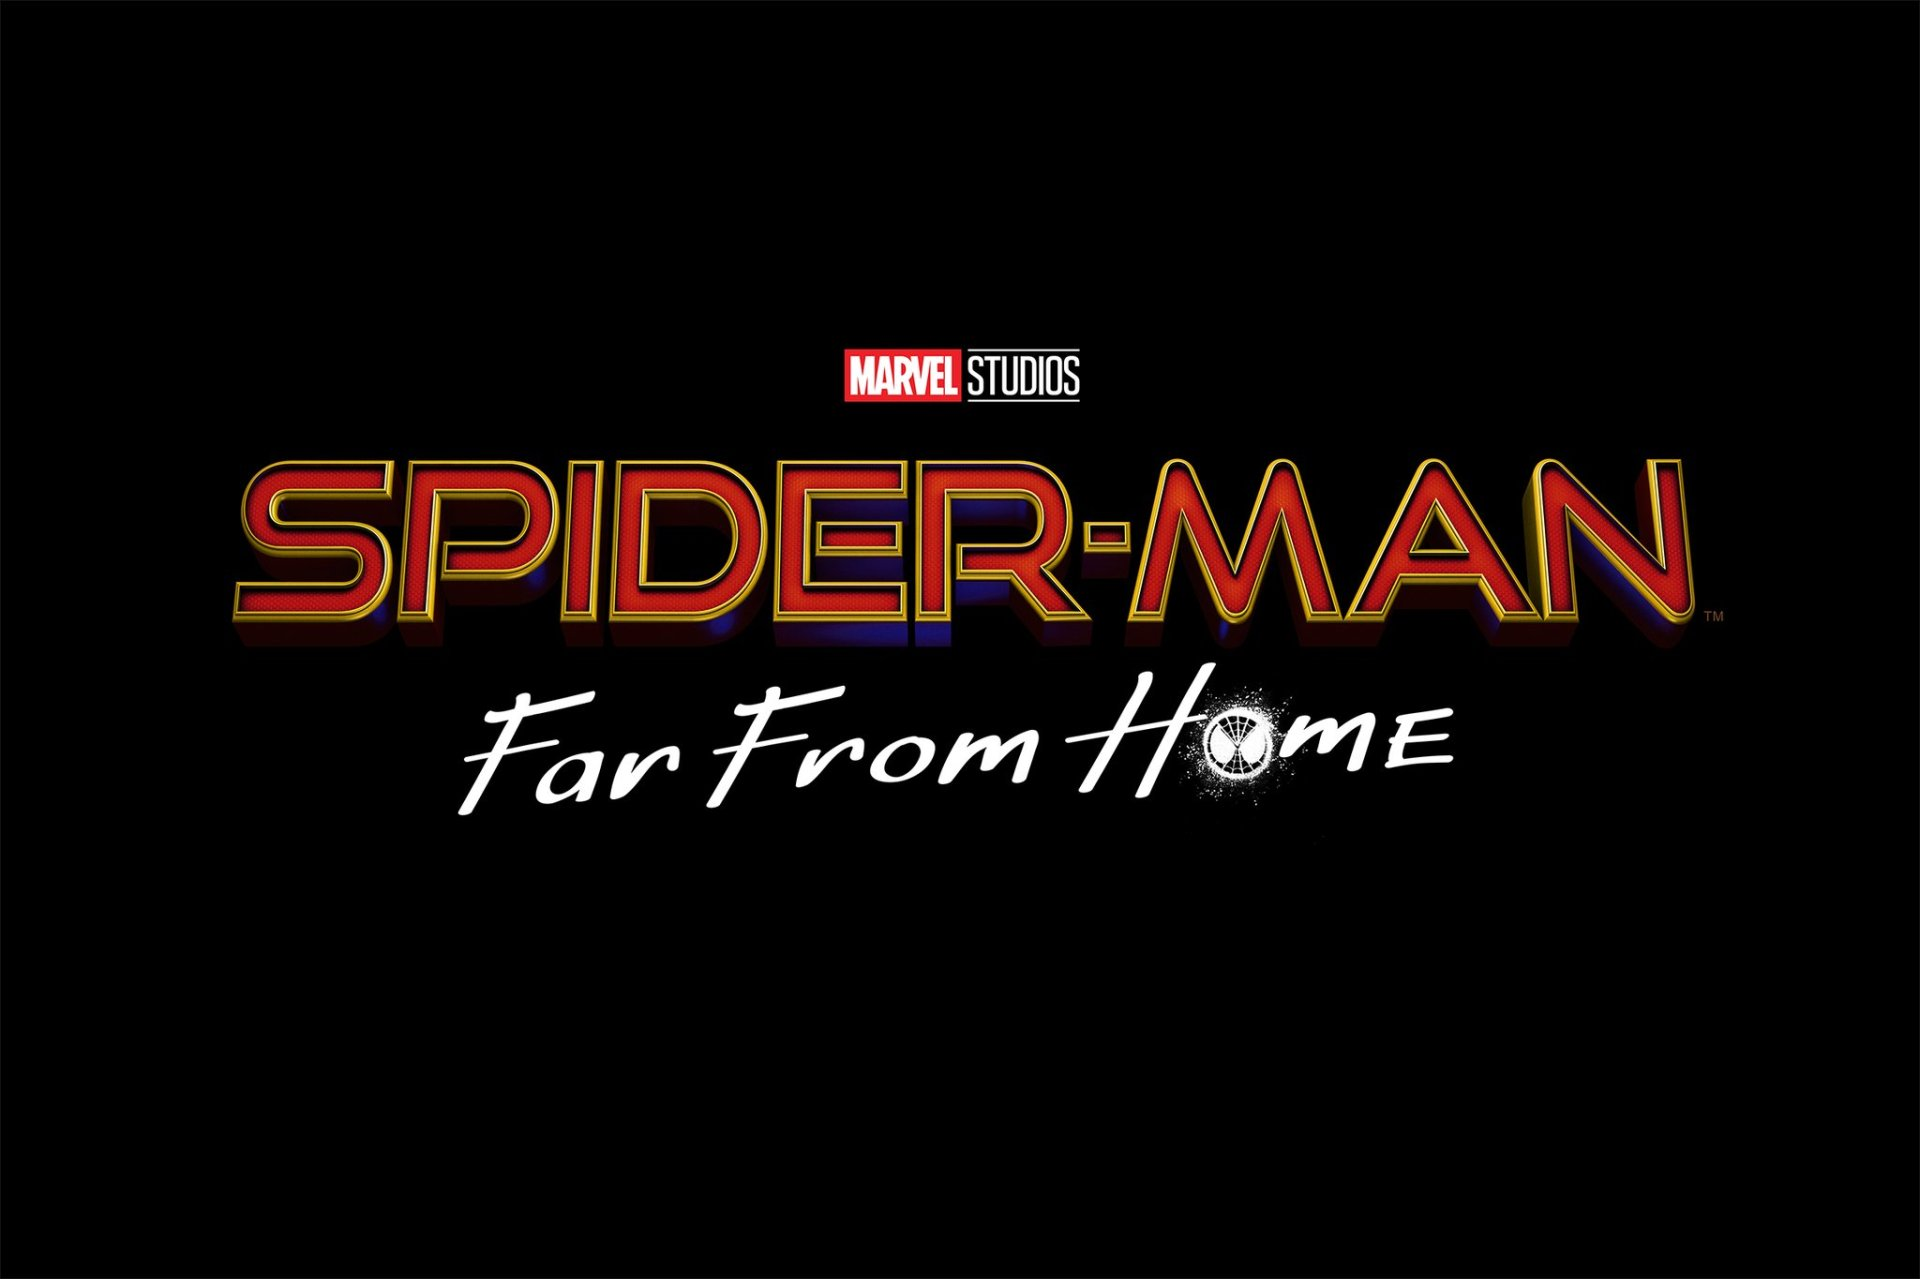 spider-man far from home poster logo